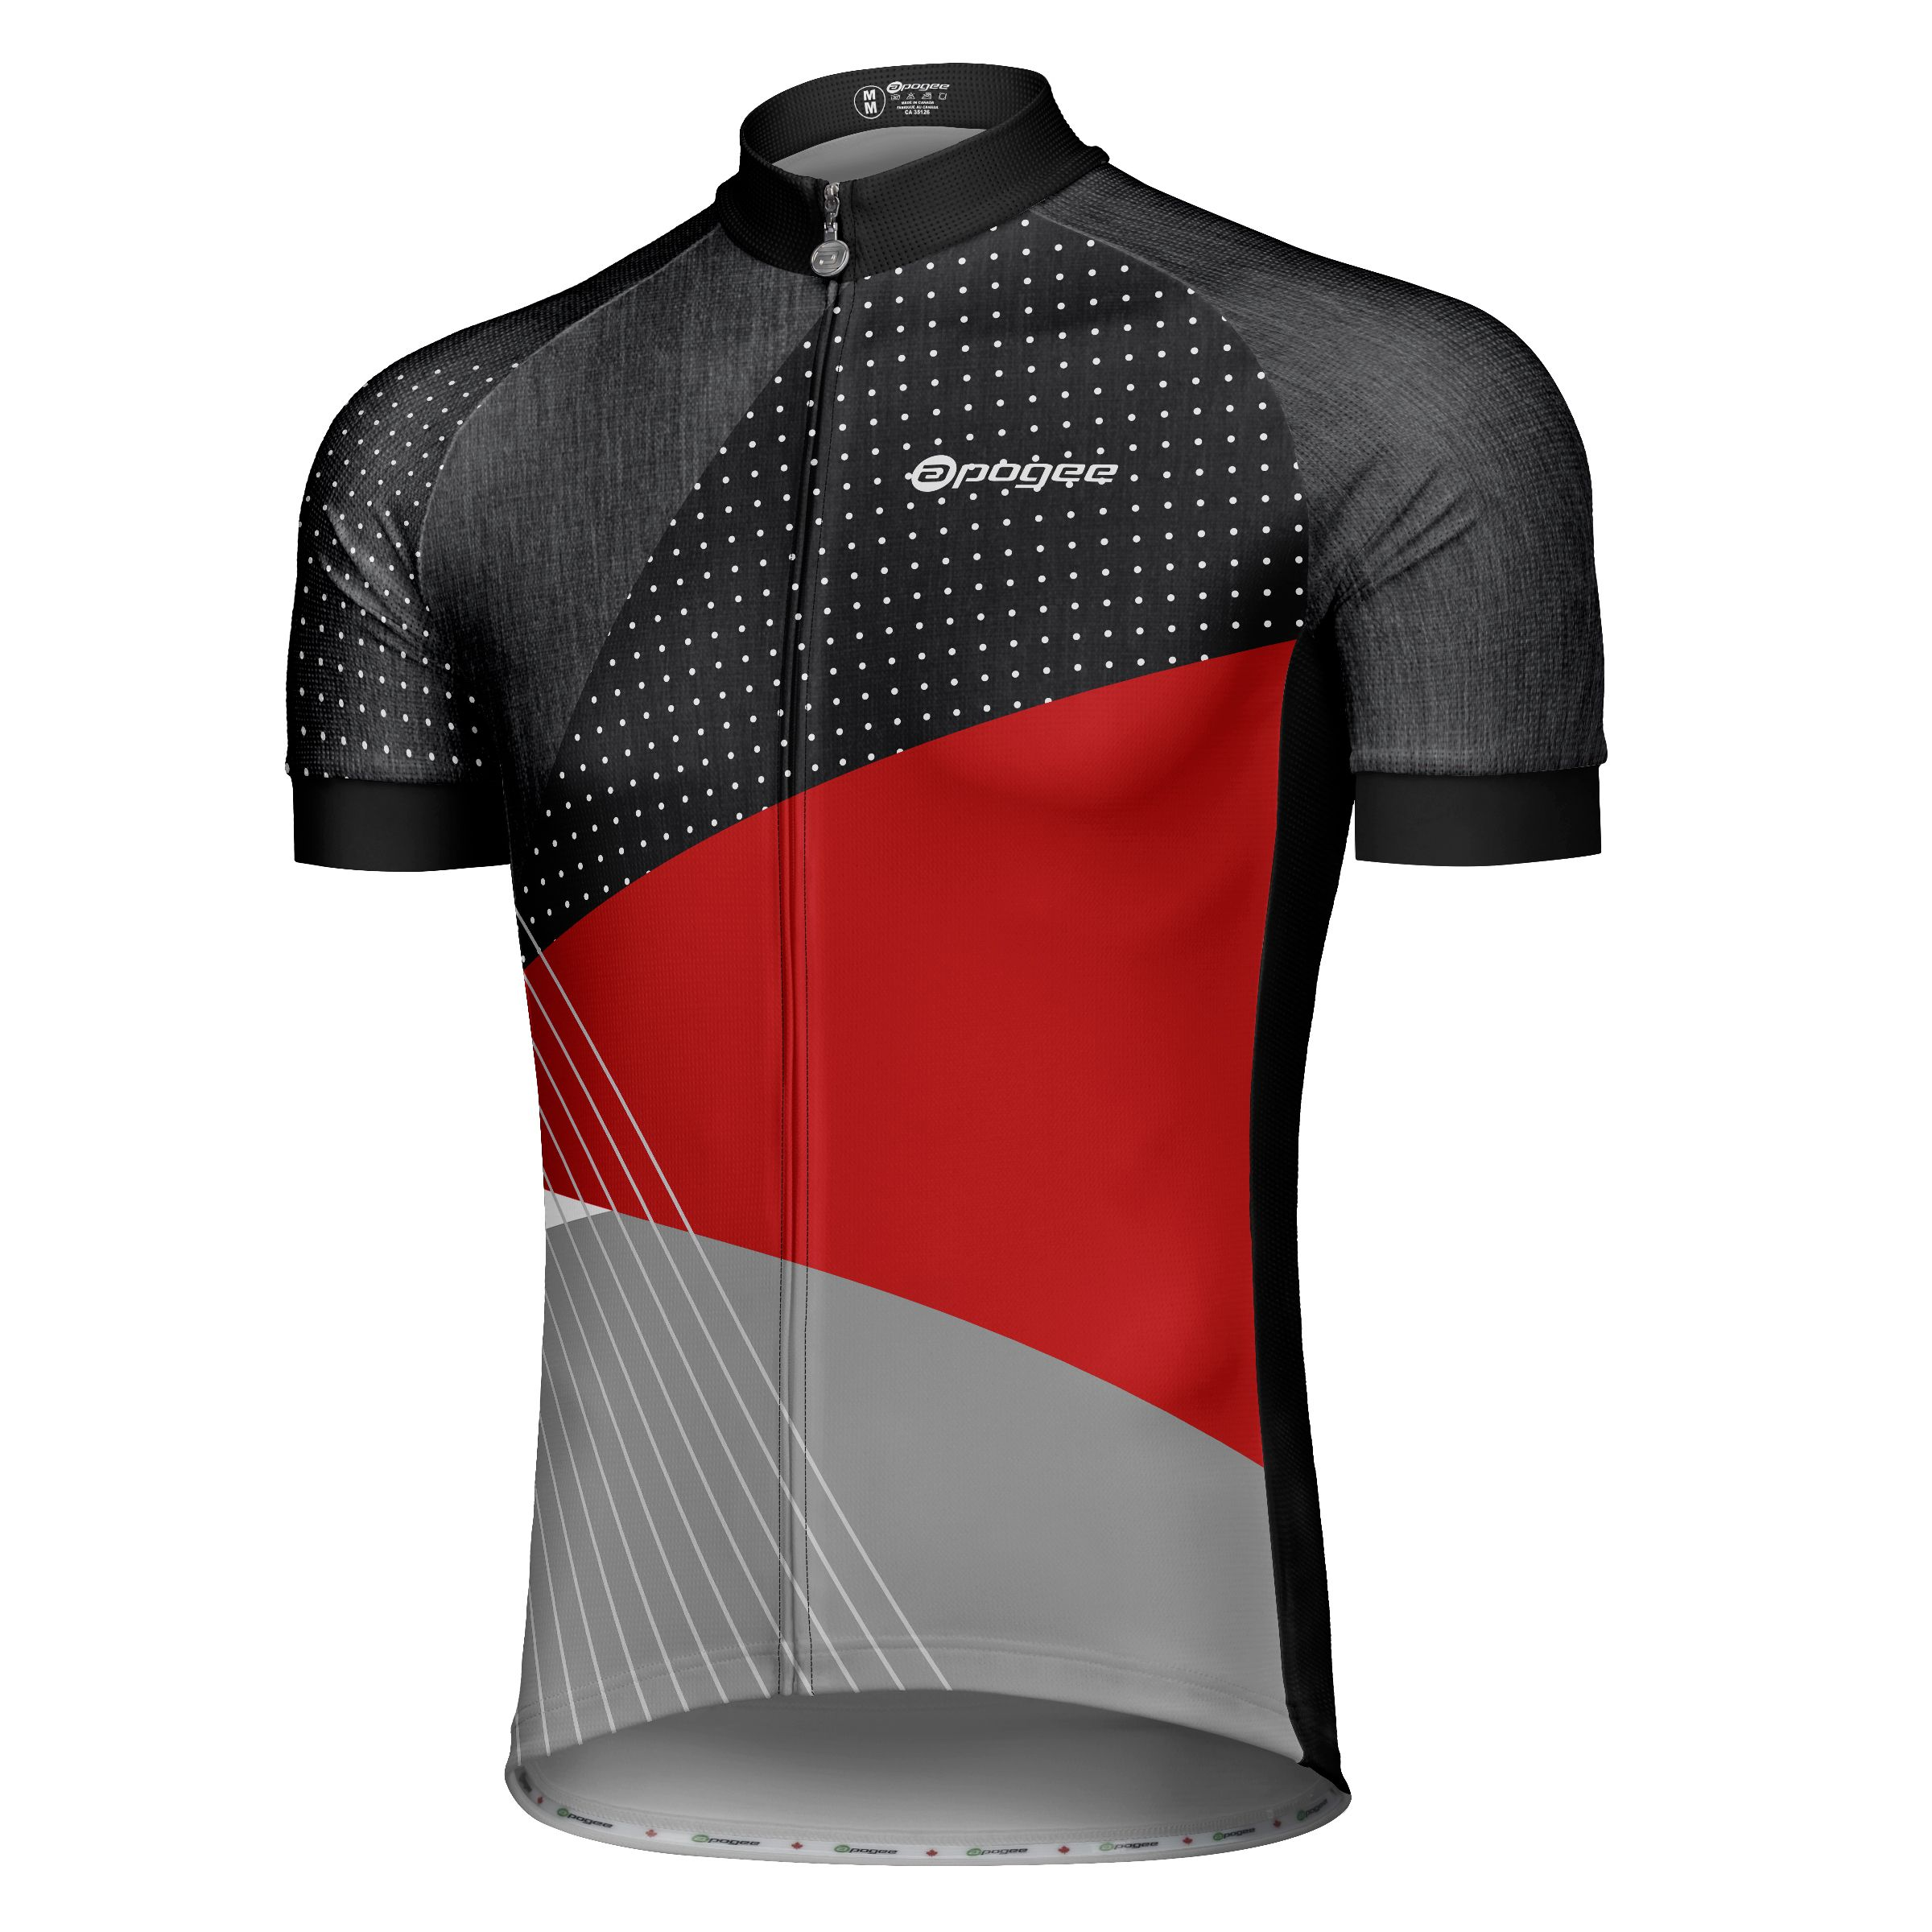 d268c841b Cycling jersey - Designed and made by Apogee Sports. Visit www.apogee-sports